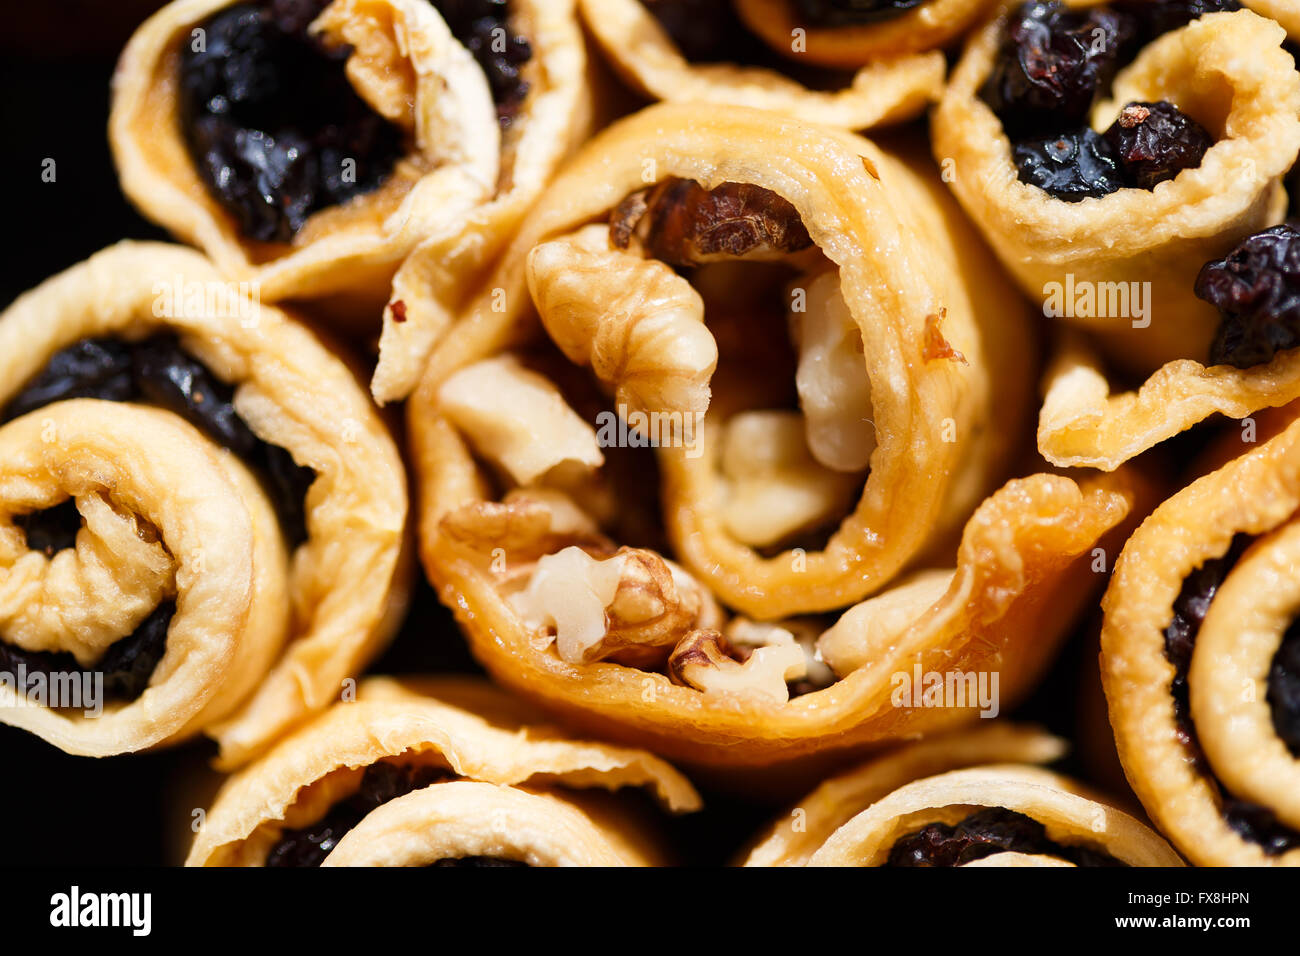 Dietary sweets with nuts and raisins close up - Stock Image